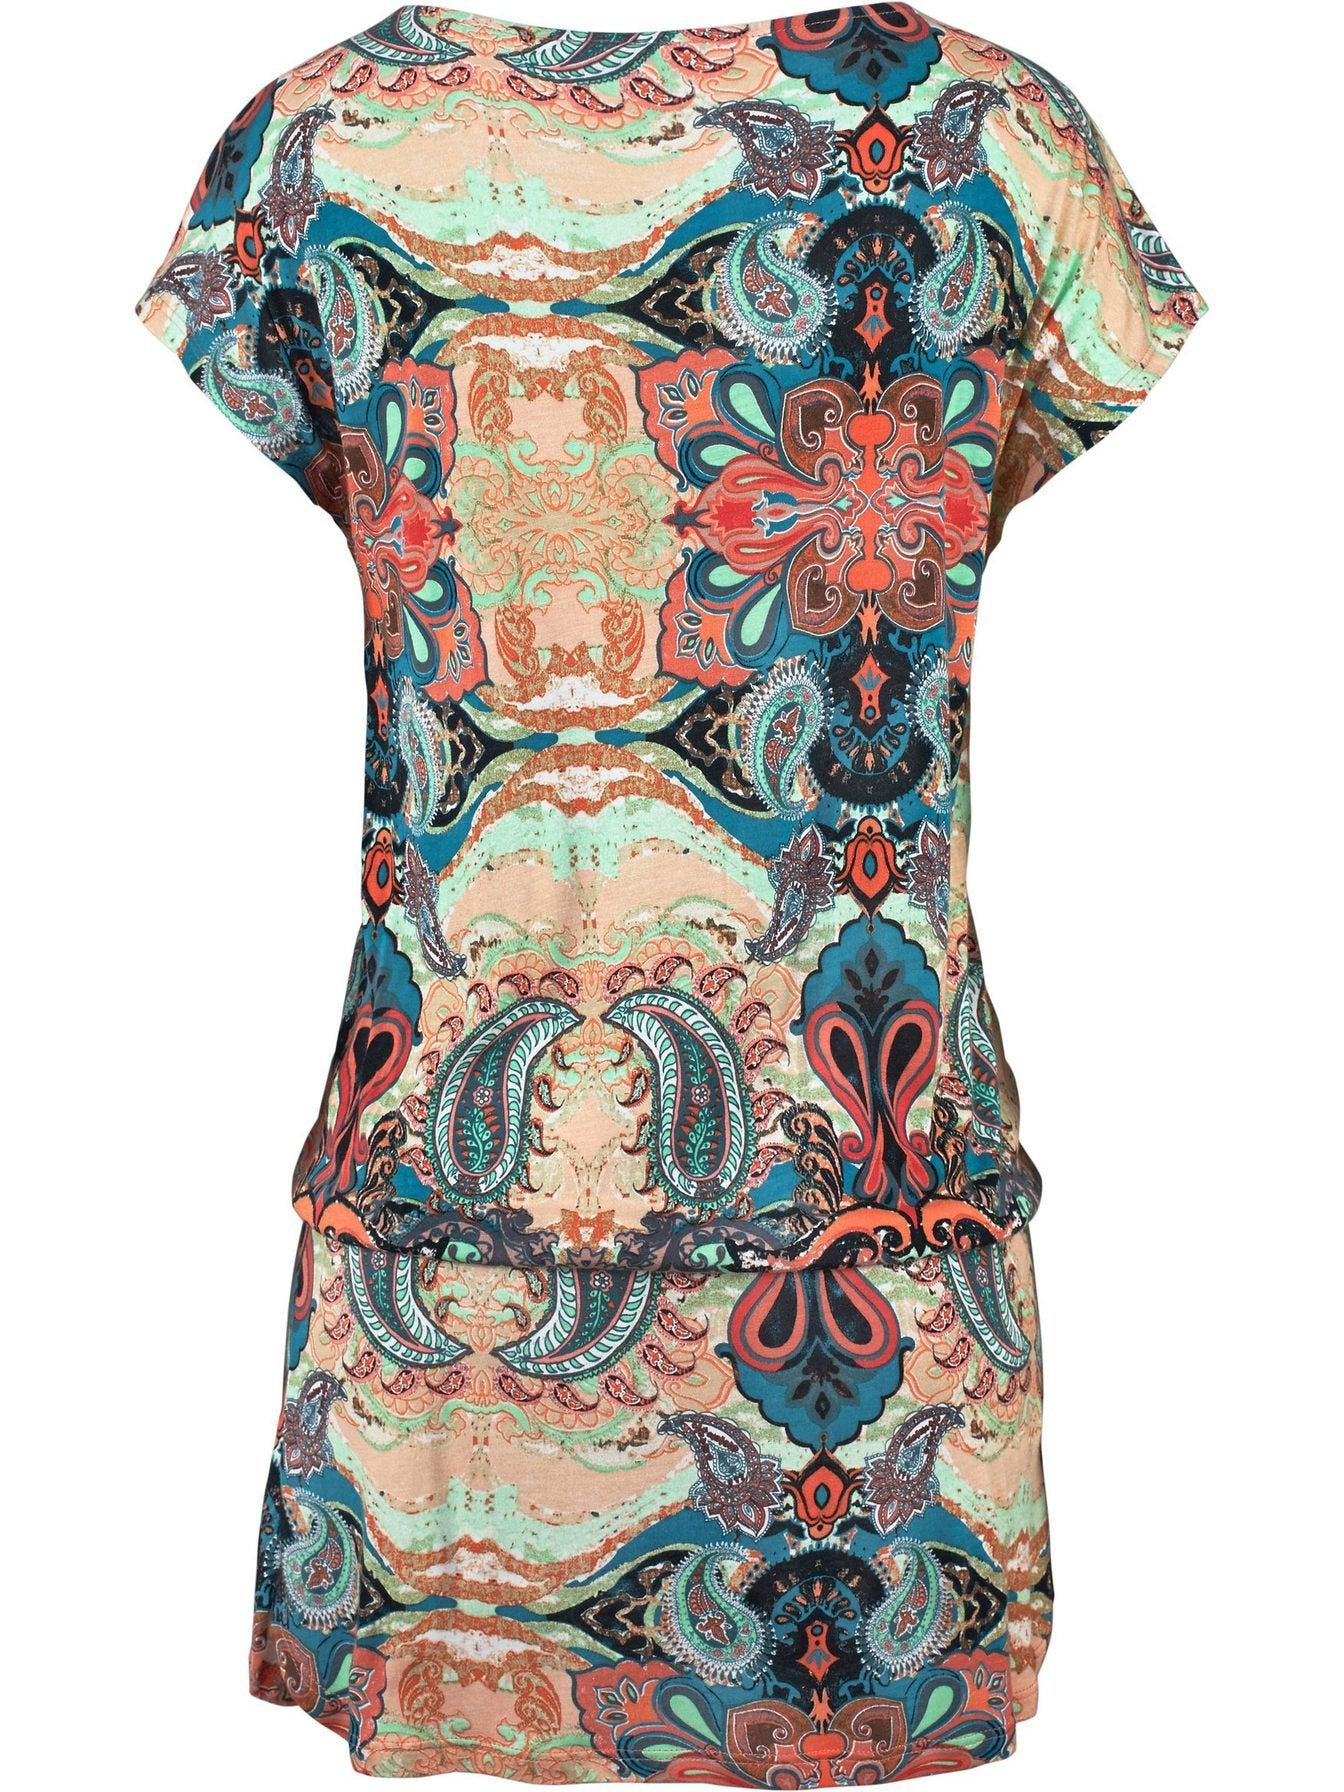 Printed Short-sleeved Beach Dress-Maxi Dress-FeChicin.com-FeChicin.com